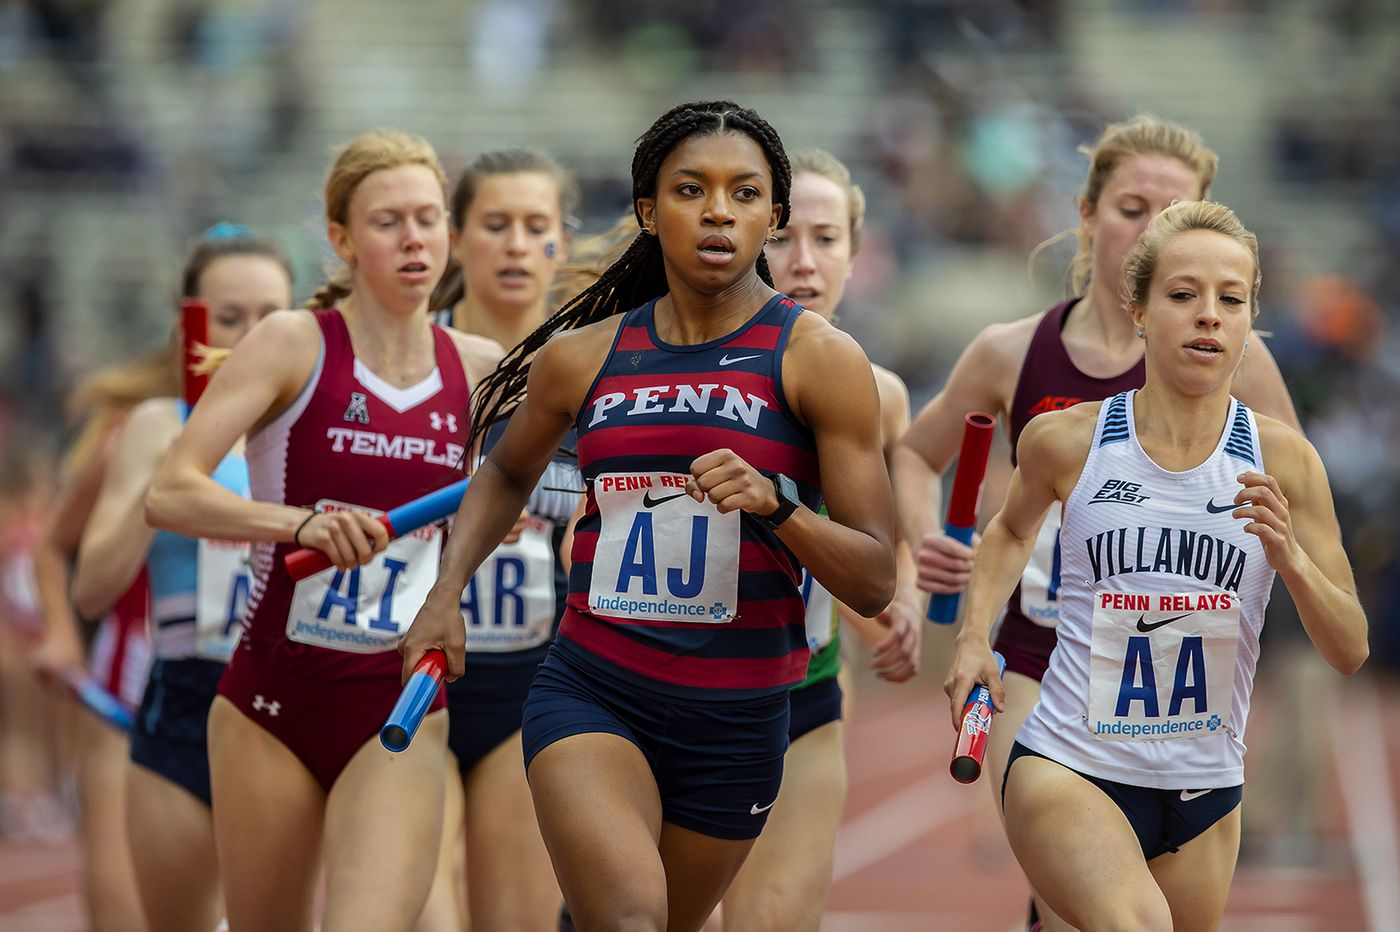 Penn's Nia Akins a top national-championship contender at 800 meters